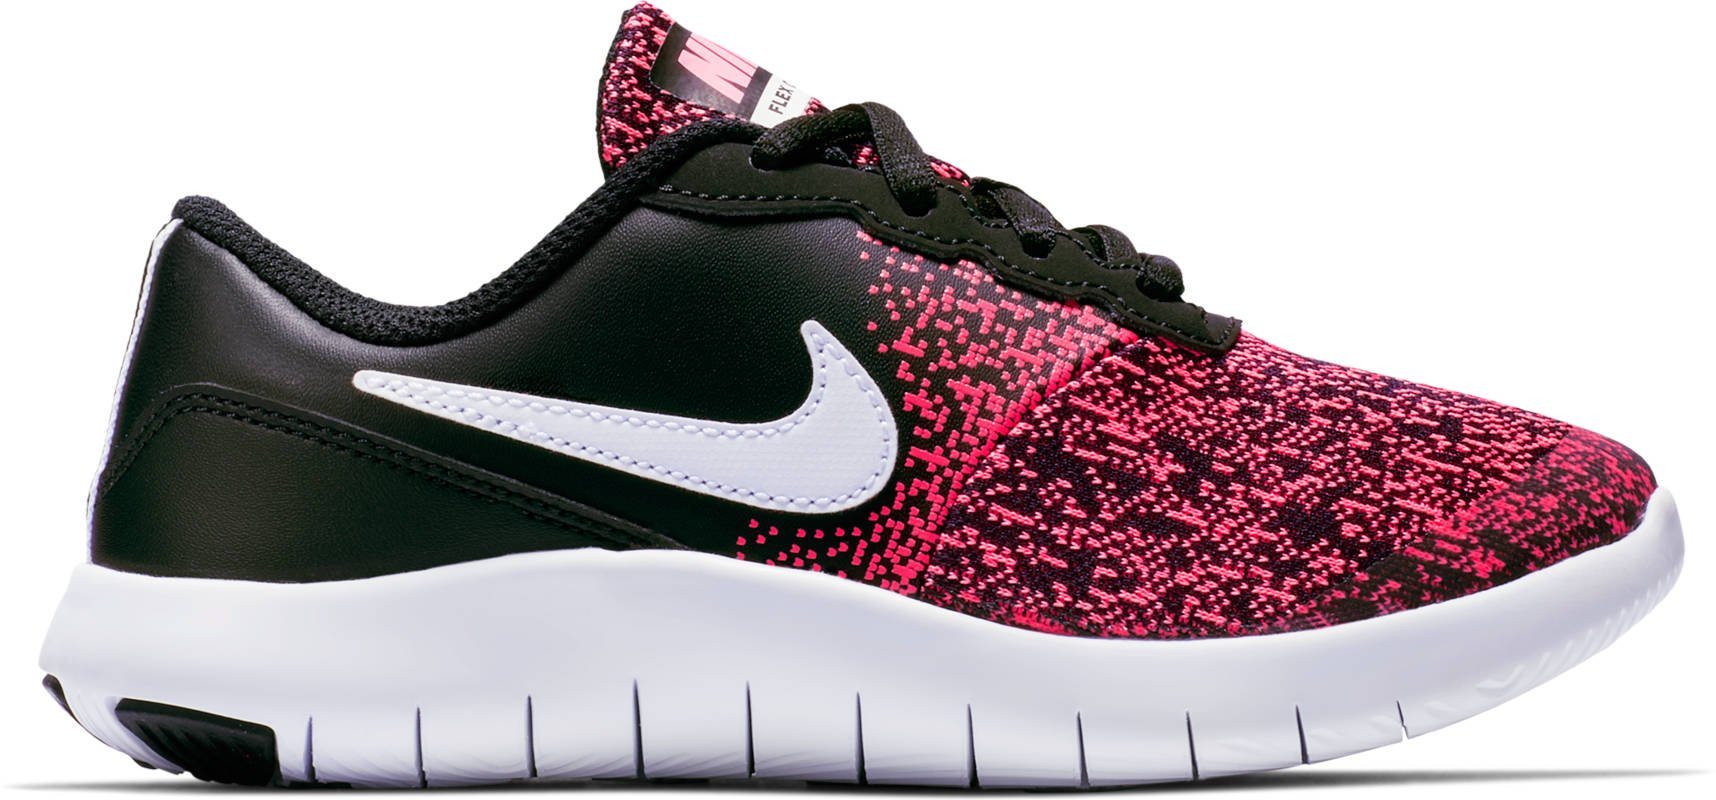 Nike Kids Flex Contact (PS) Shoes Black White Racer Pink Size 2.5